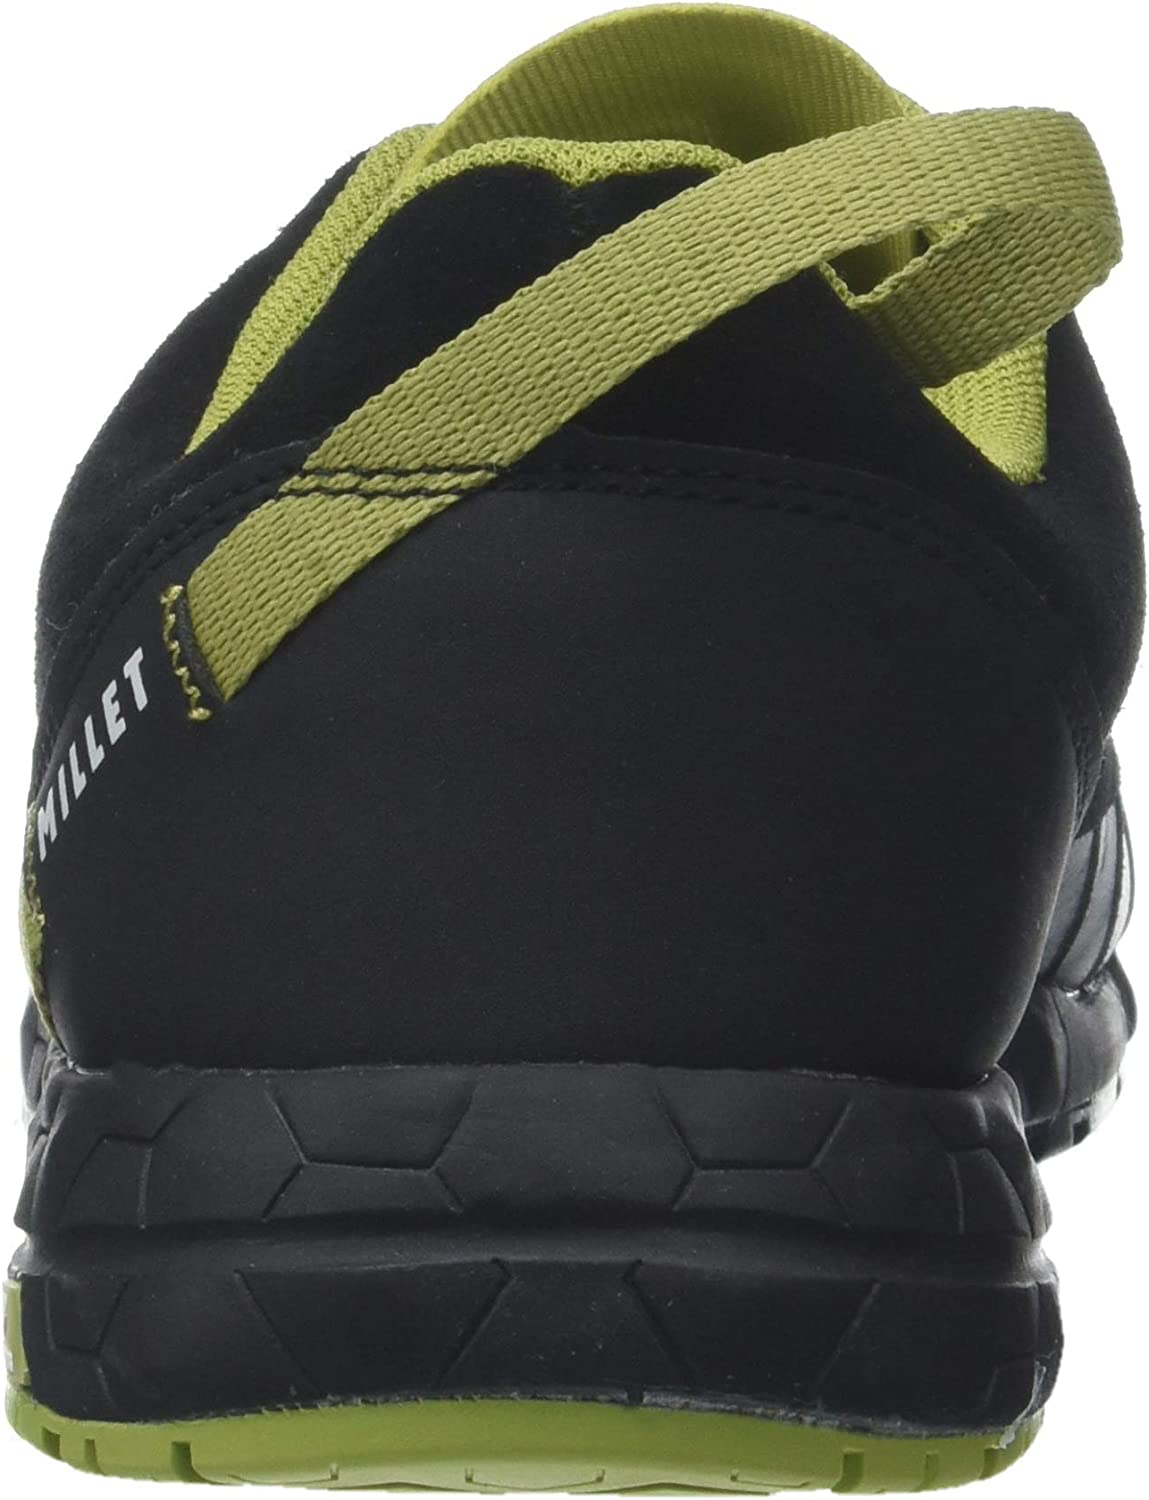 MILLET Mens Low Rise Hiking Boots